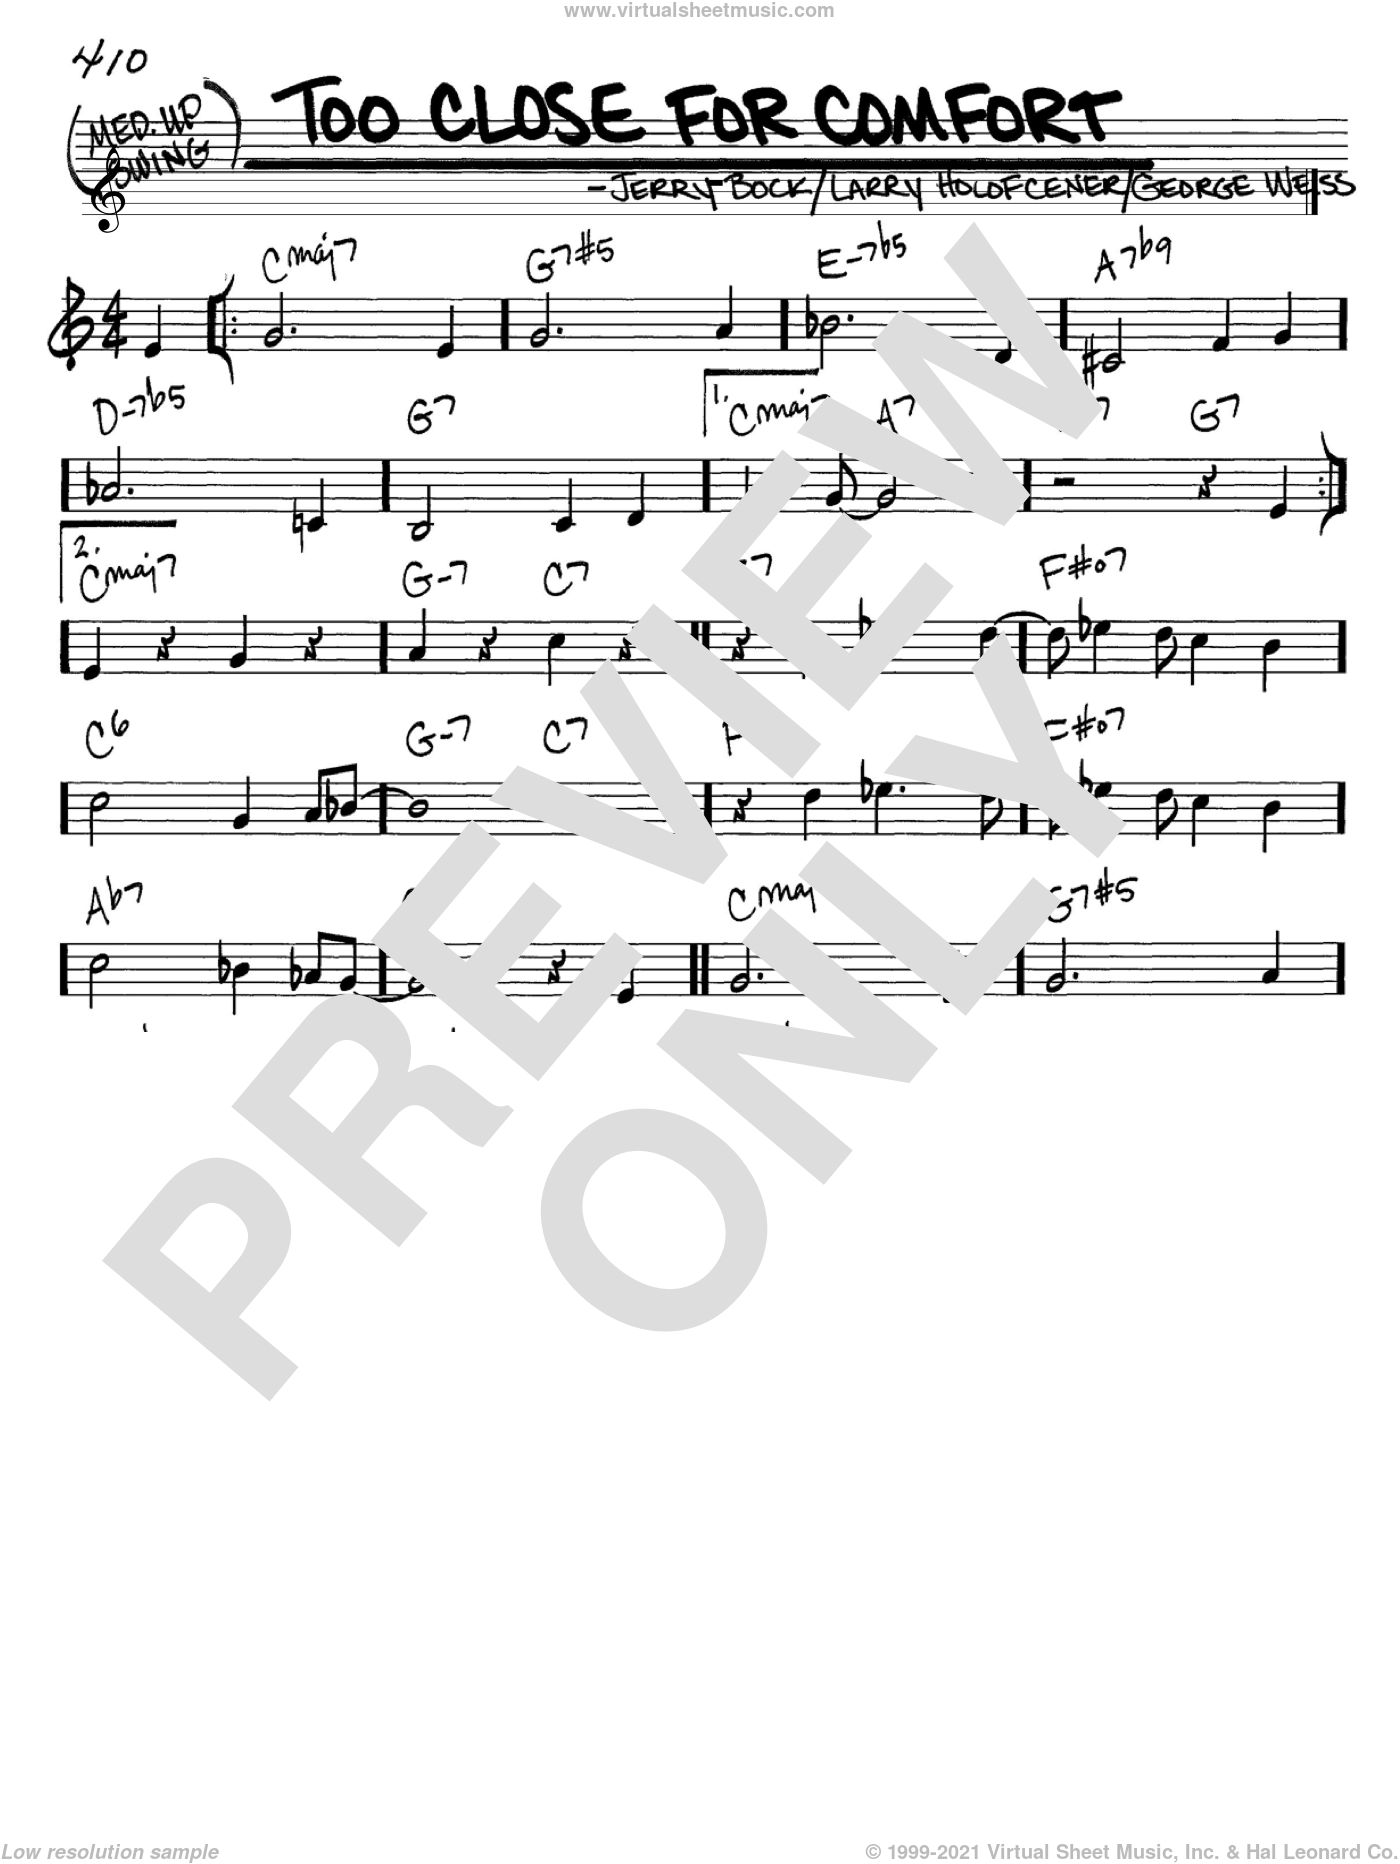 Too Close For Comfort sheet music for voice and other instruments (C) by Larry Holofcener